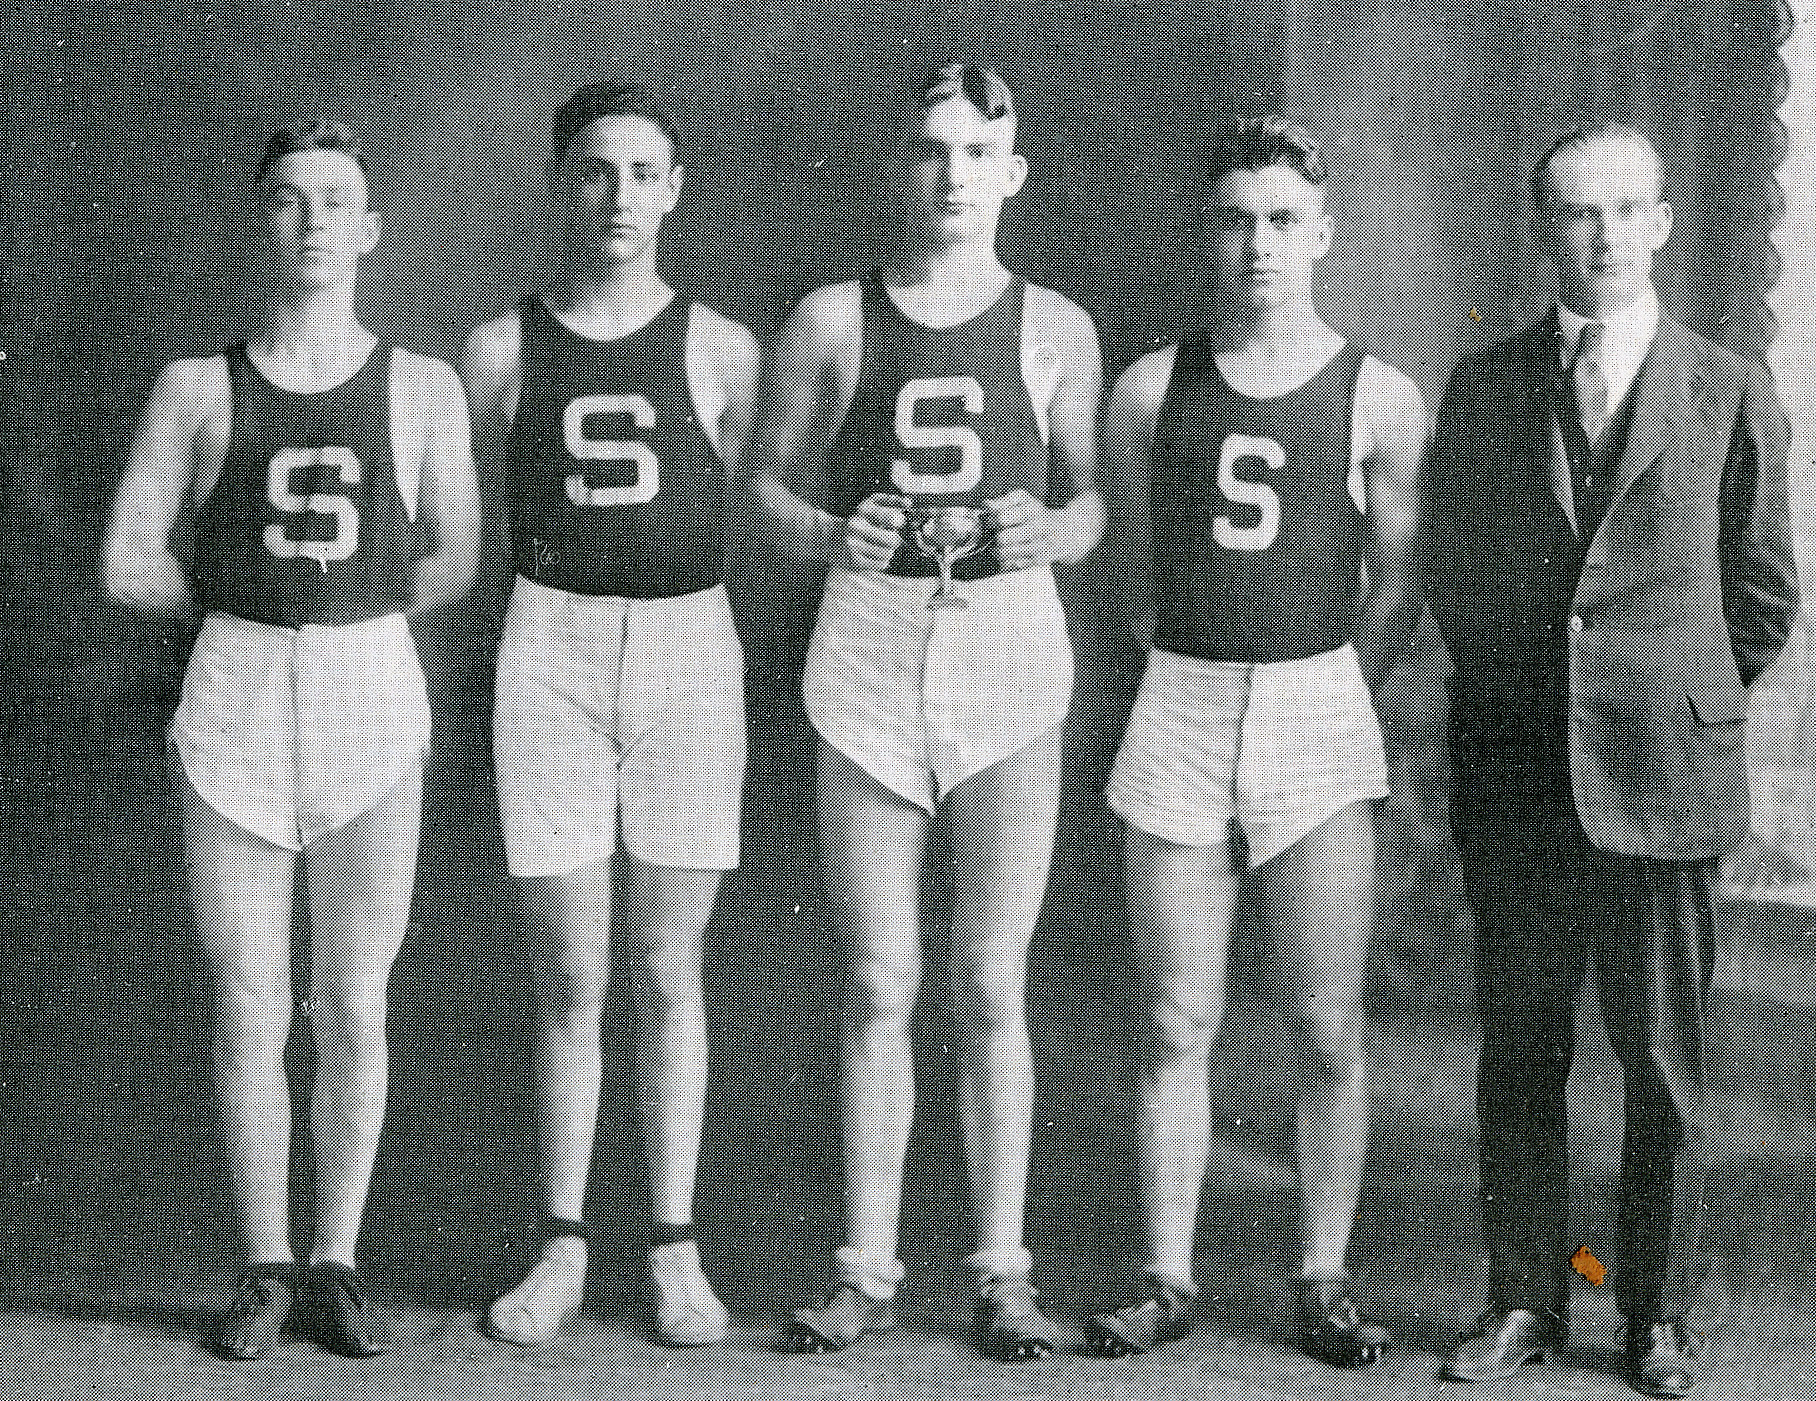 The 1920 Sumter High School basketball team comprised, from left, J.M. Fraser; Harry Ryttenberg; Harold DeLorme, captain; Jack Chandler; and William Winn, coach.